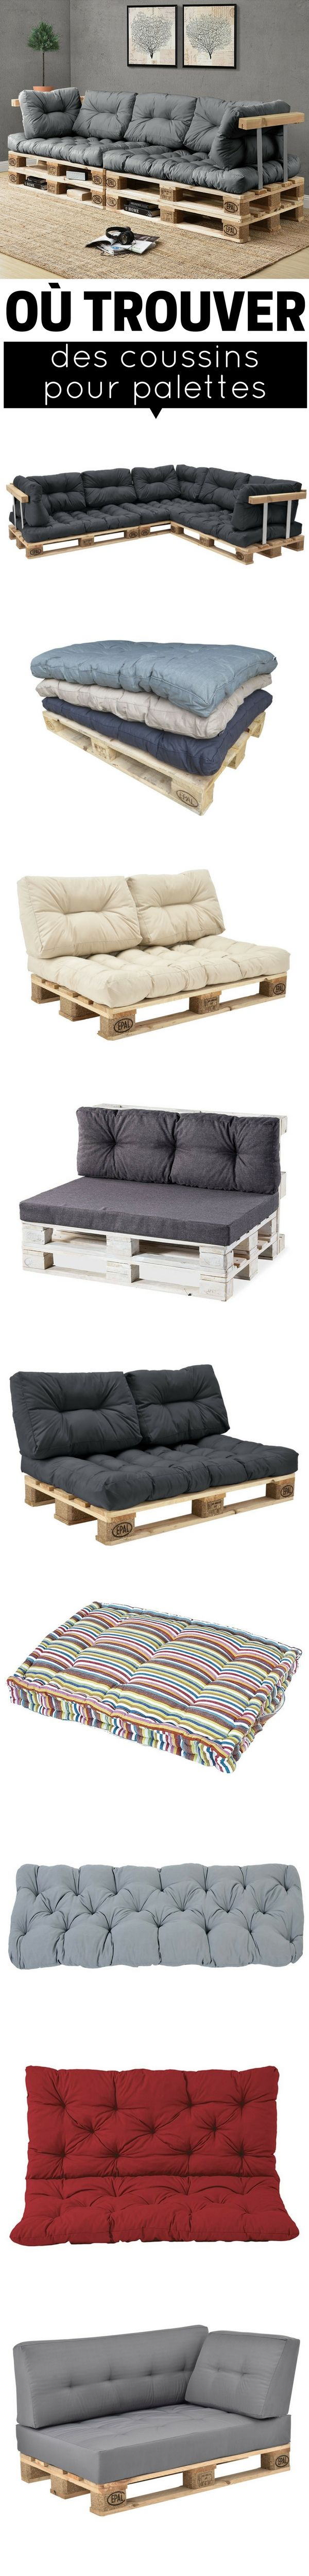 les 25 meilleures id es de la cat gorie 1001 palettes sur. Black Bedroom Furniture Sets. Home Design Ideas